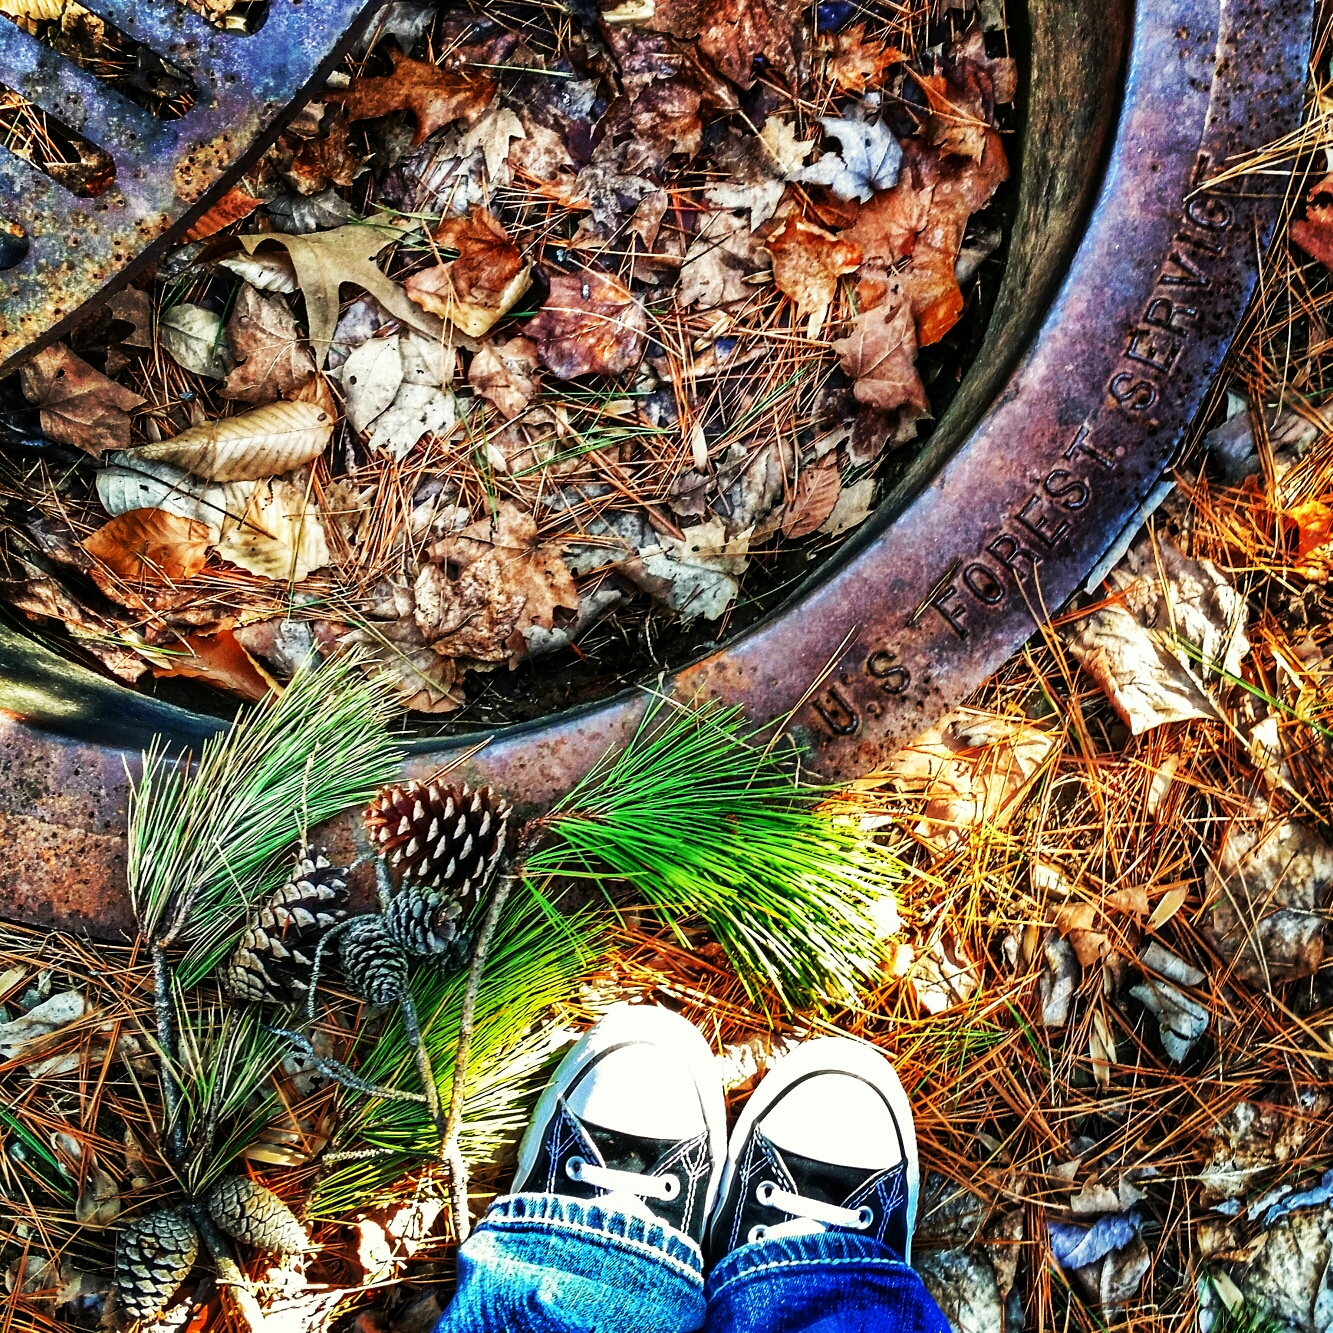 A picture looking down at a pair of shoes amongst pine needles, pinecones and leaves.